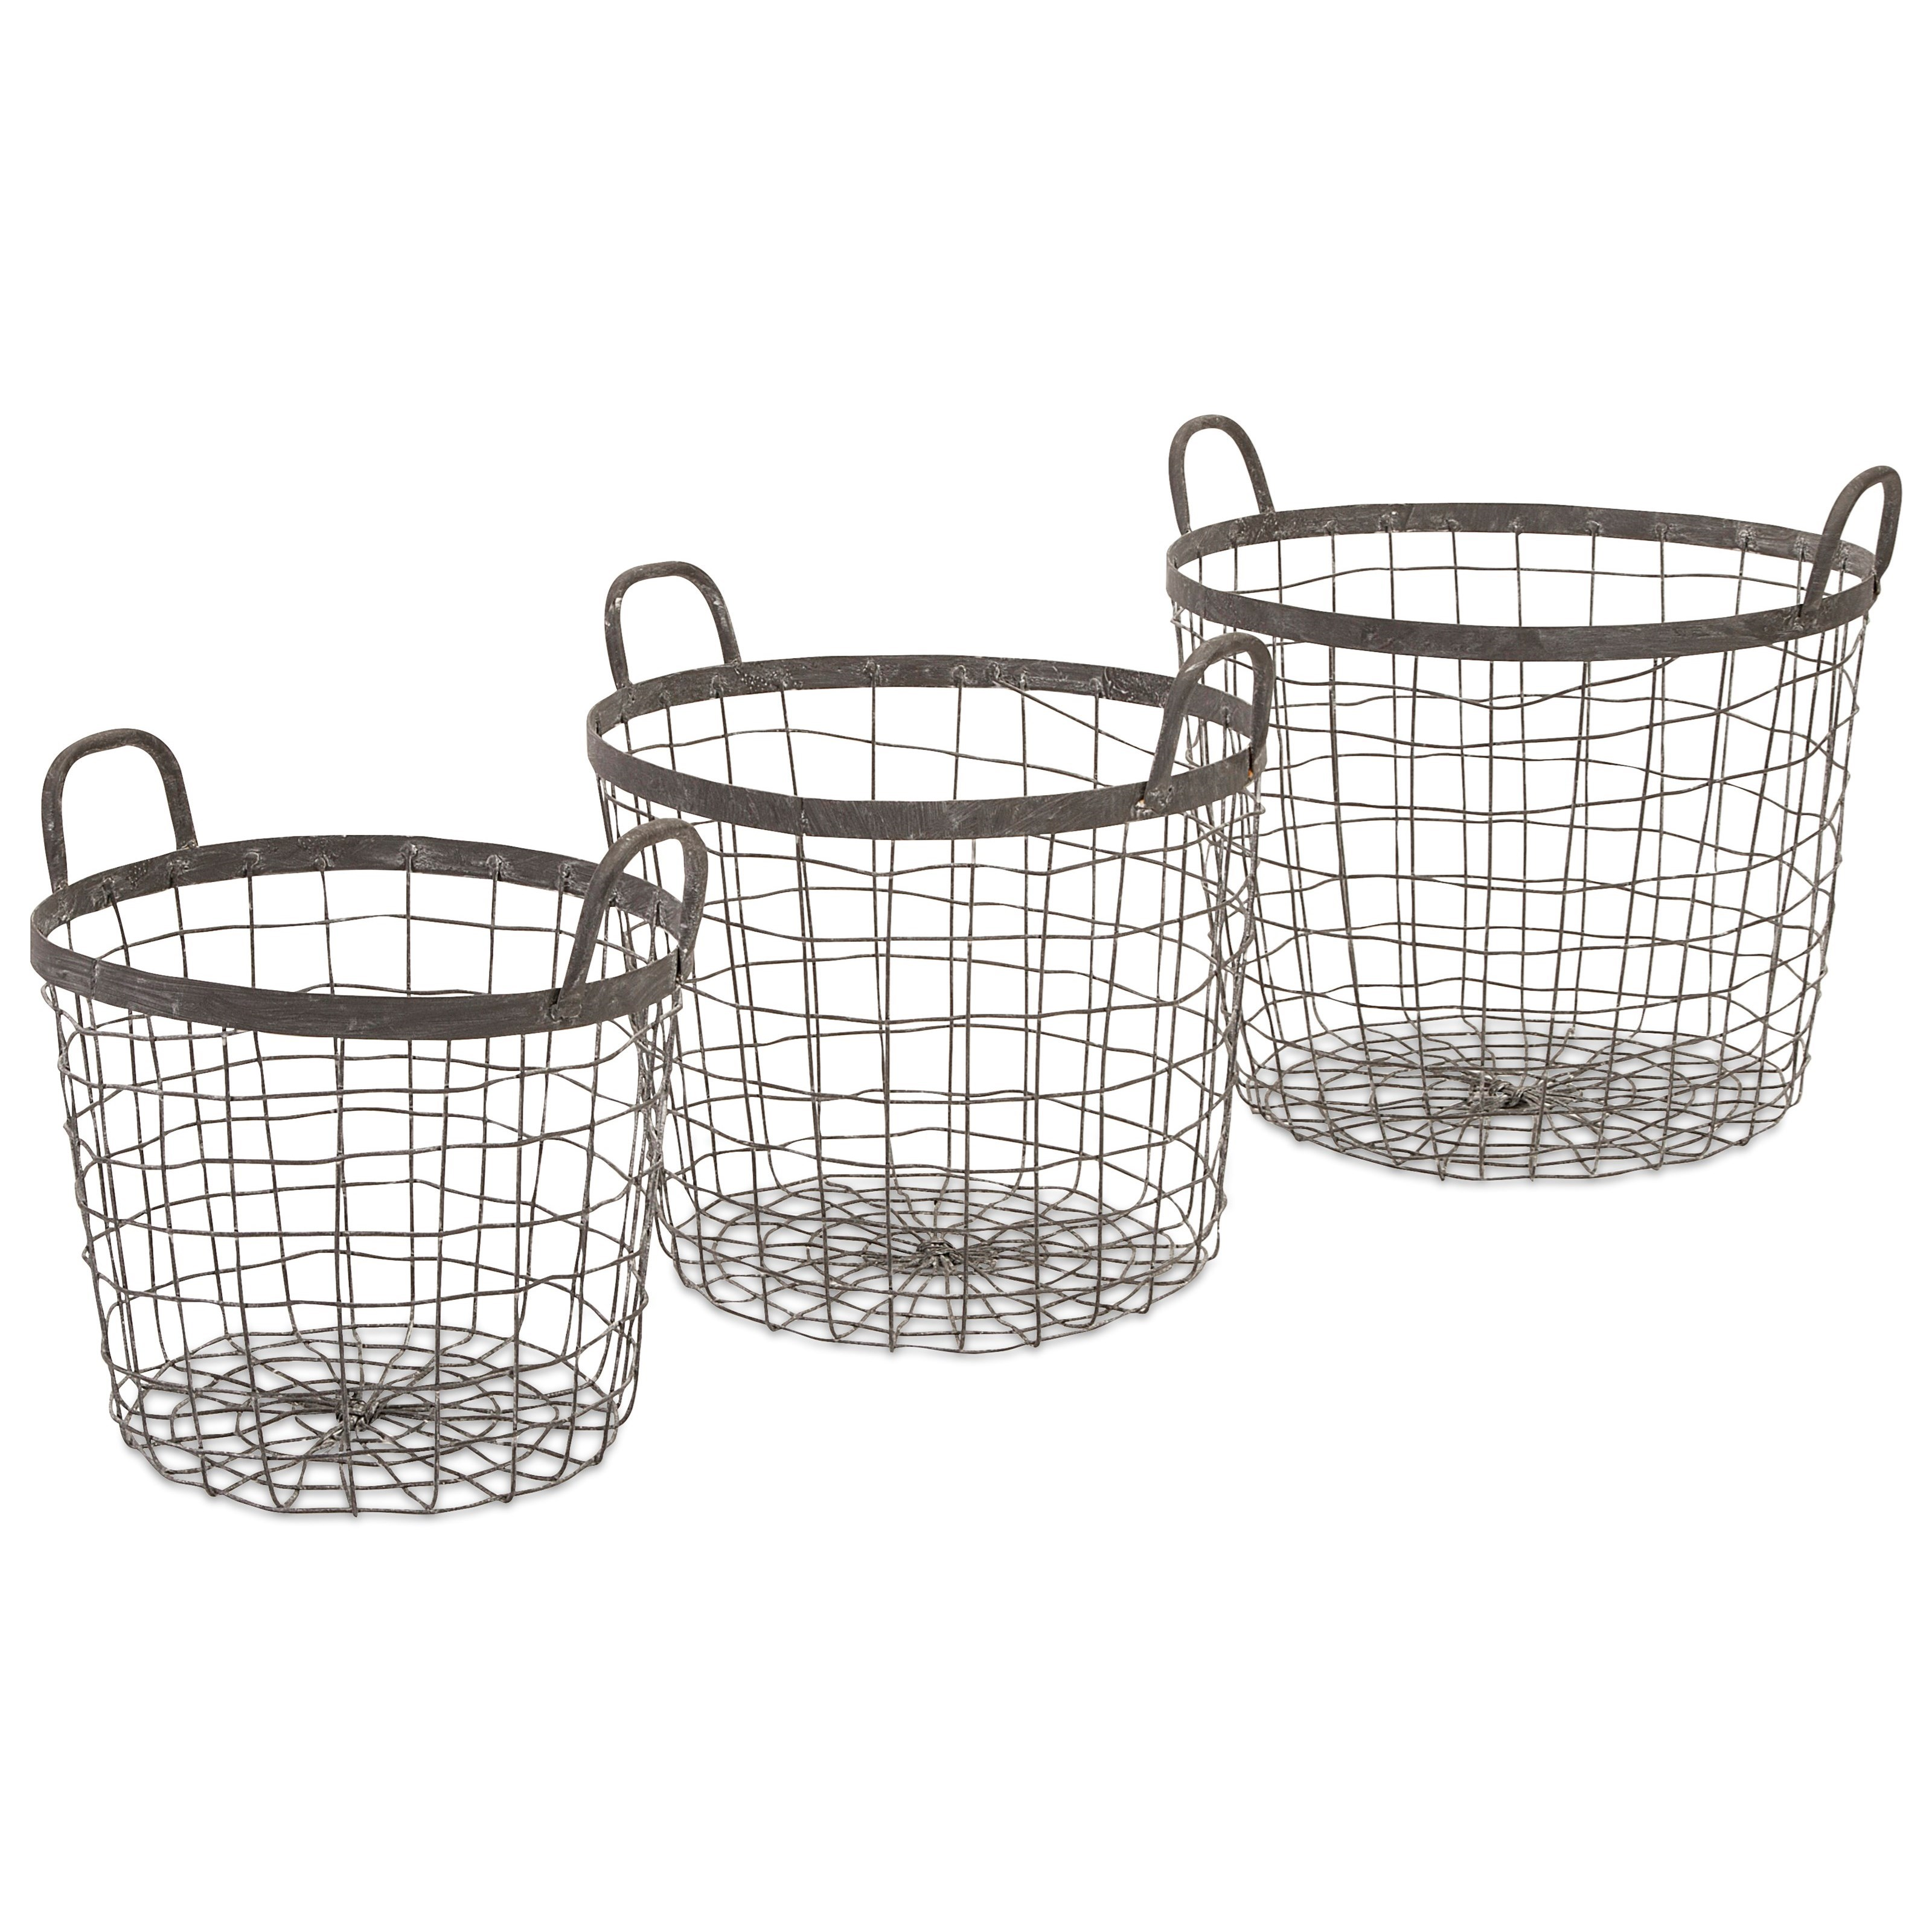 Baskets Metro Wire Baskets - Set of 3 by IMAX Worldwide Home at Alison Craig Home Furnishings